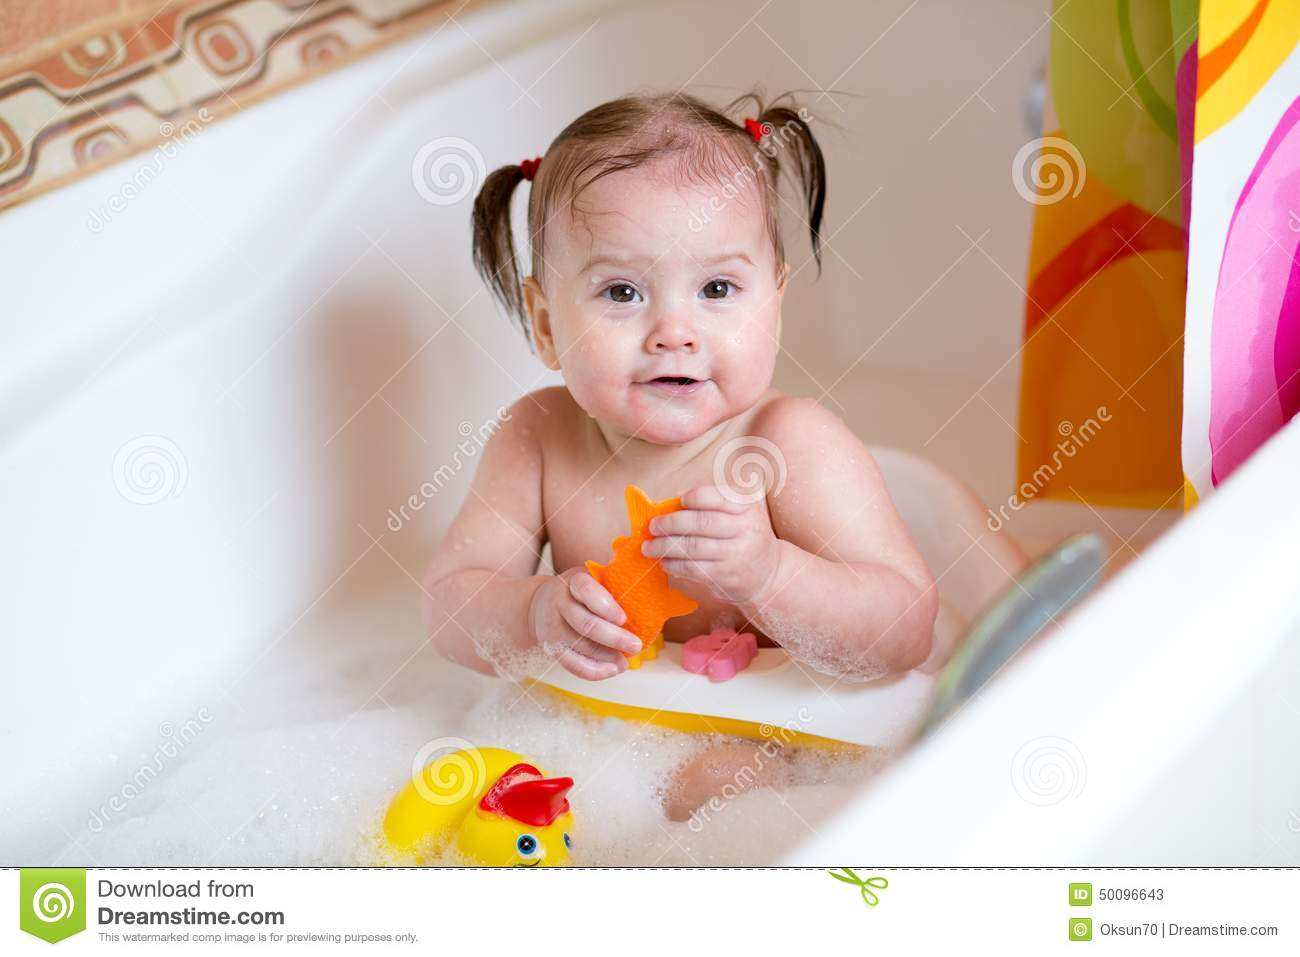 Cute baby taking a bath stock image. Image of little - 50096643